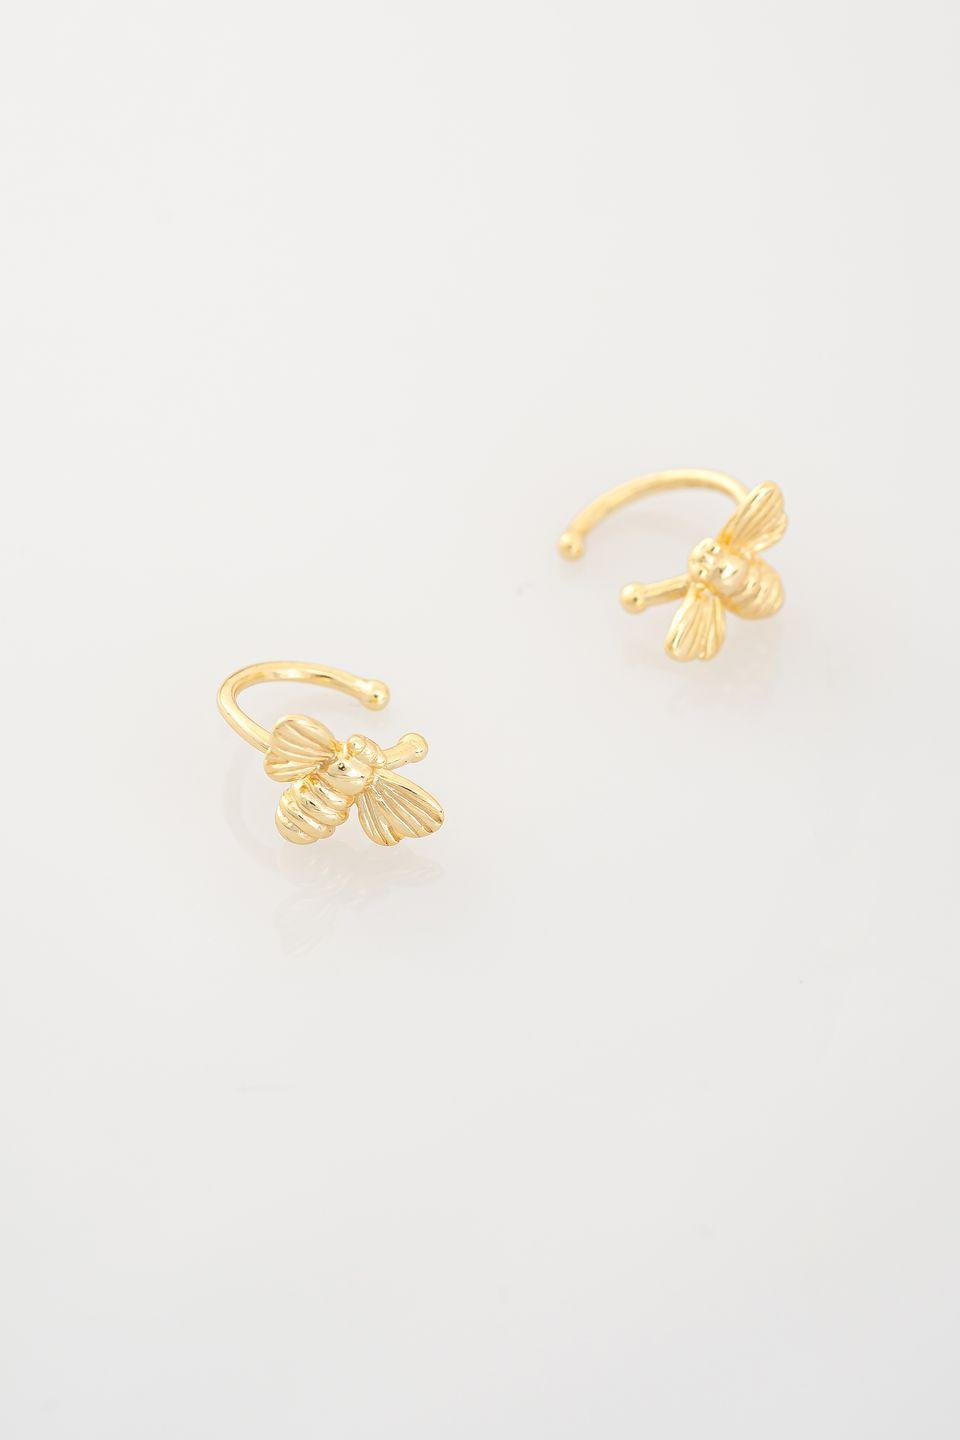 <p><em>Clip Bee Piercing Earring</em> d'argento dorato, <strong>Chiara Costacurta</strong>.</p><p>45 euro l'uno</p>